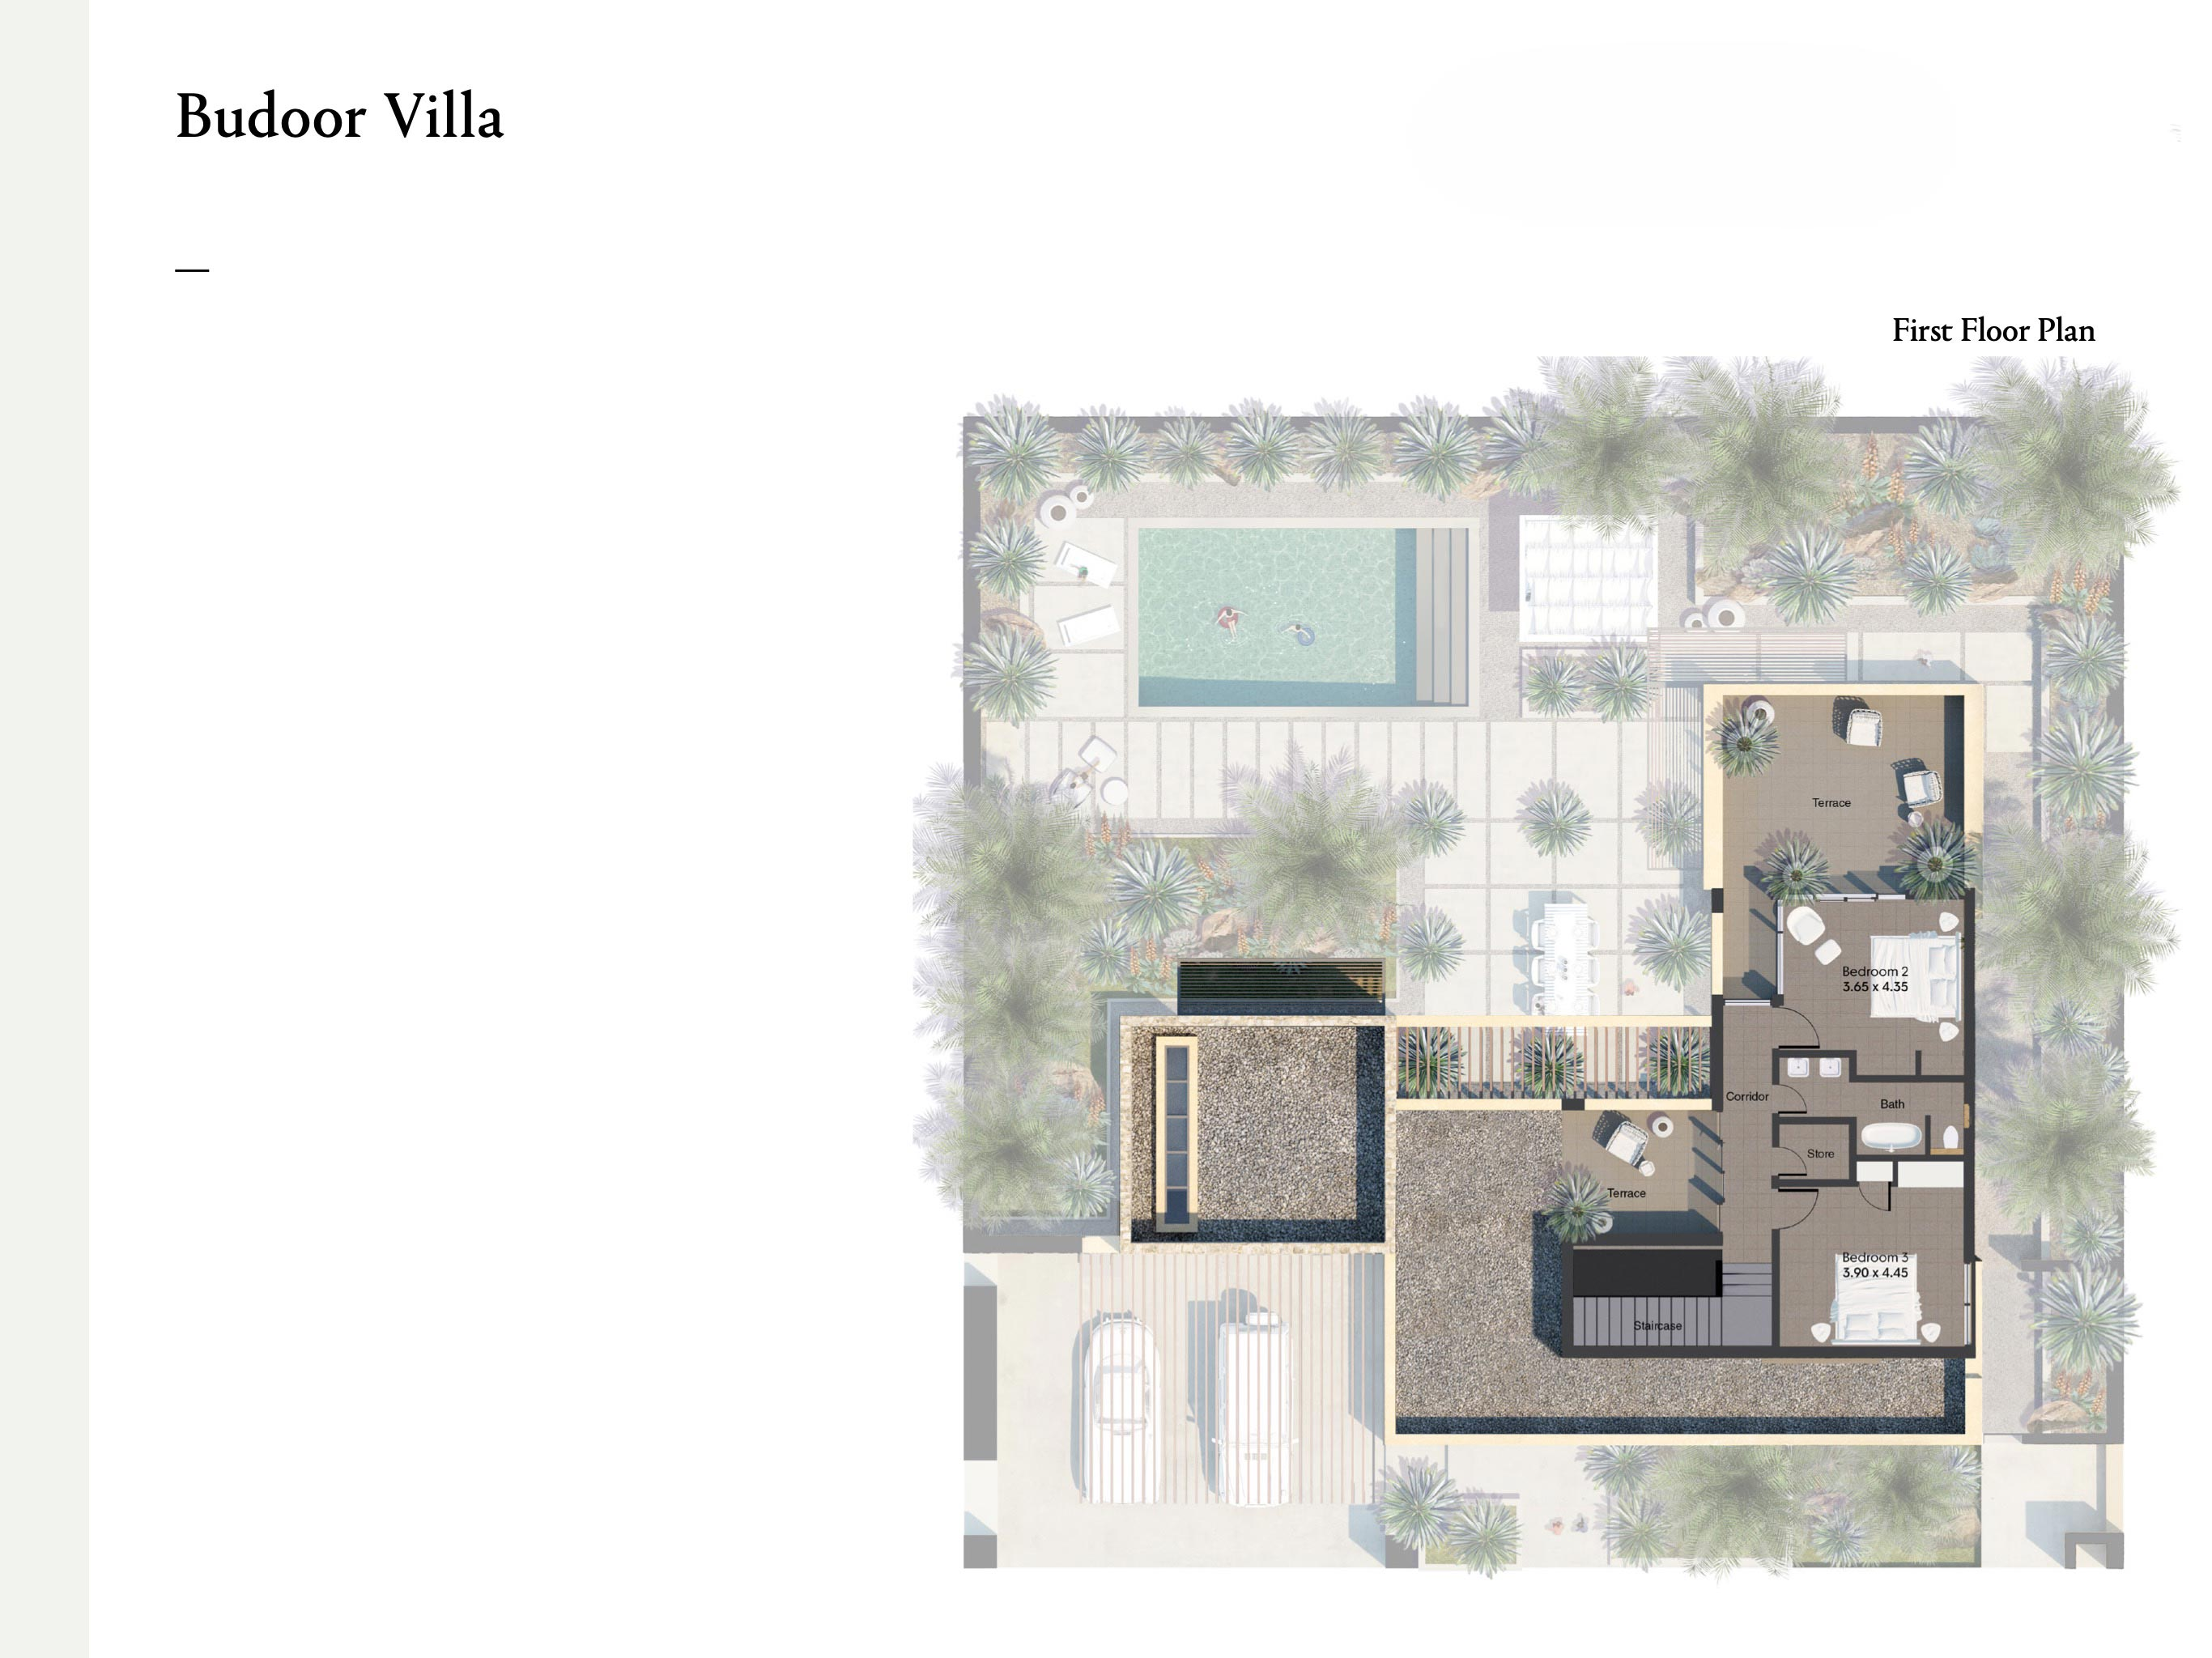 3 bedroom villas with a size area of 419 sqm